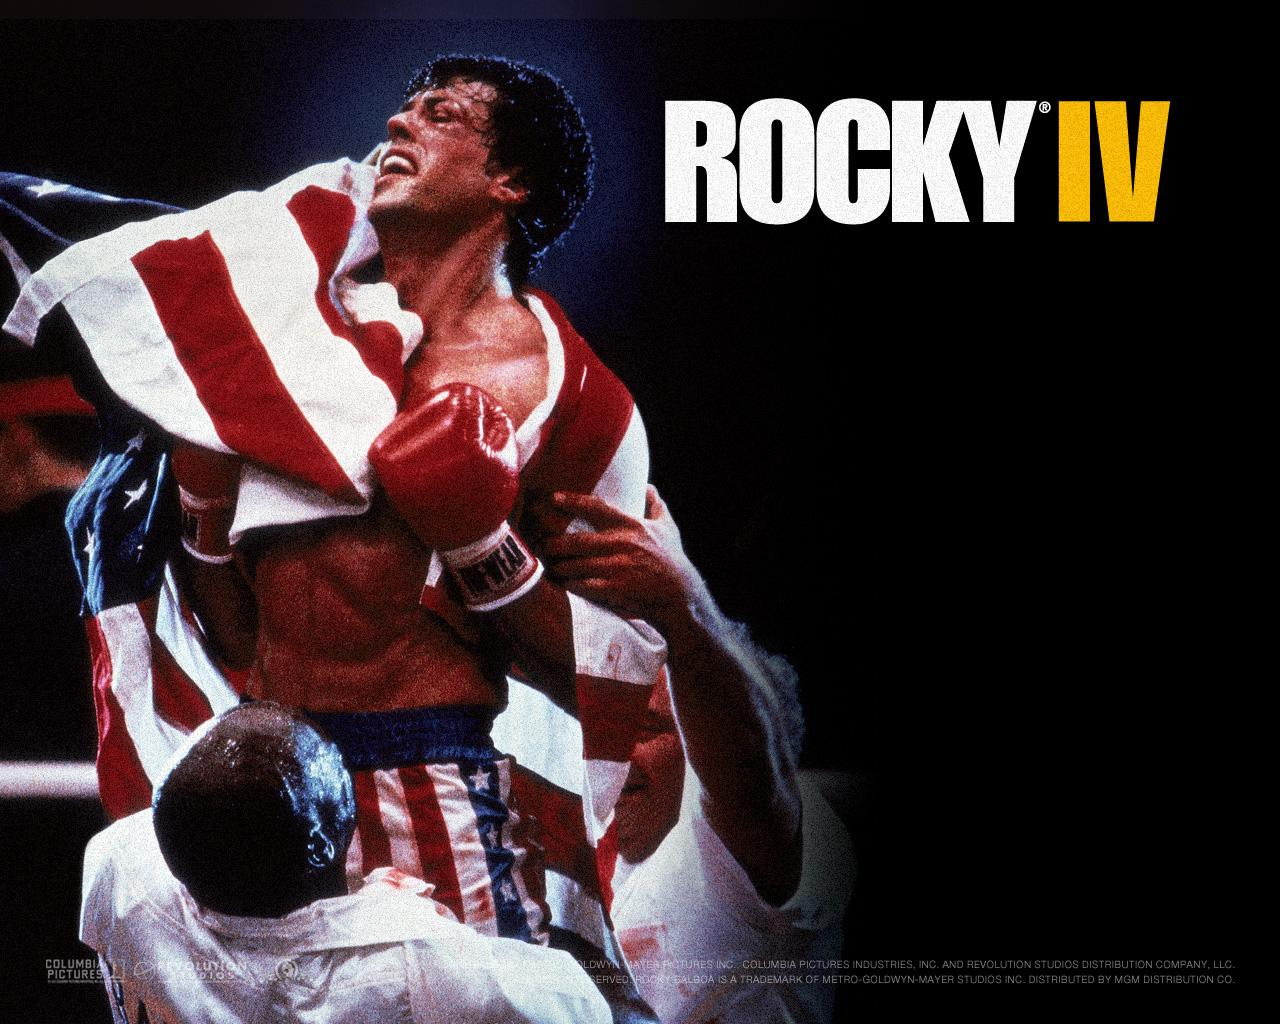 Fonds du0026#39;u00e9cran du film Rocky Iv - Wallpapers Cinu00e9ma